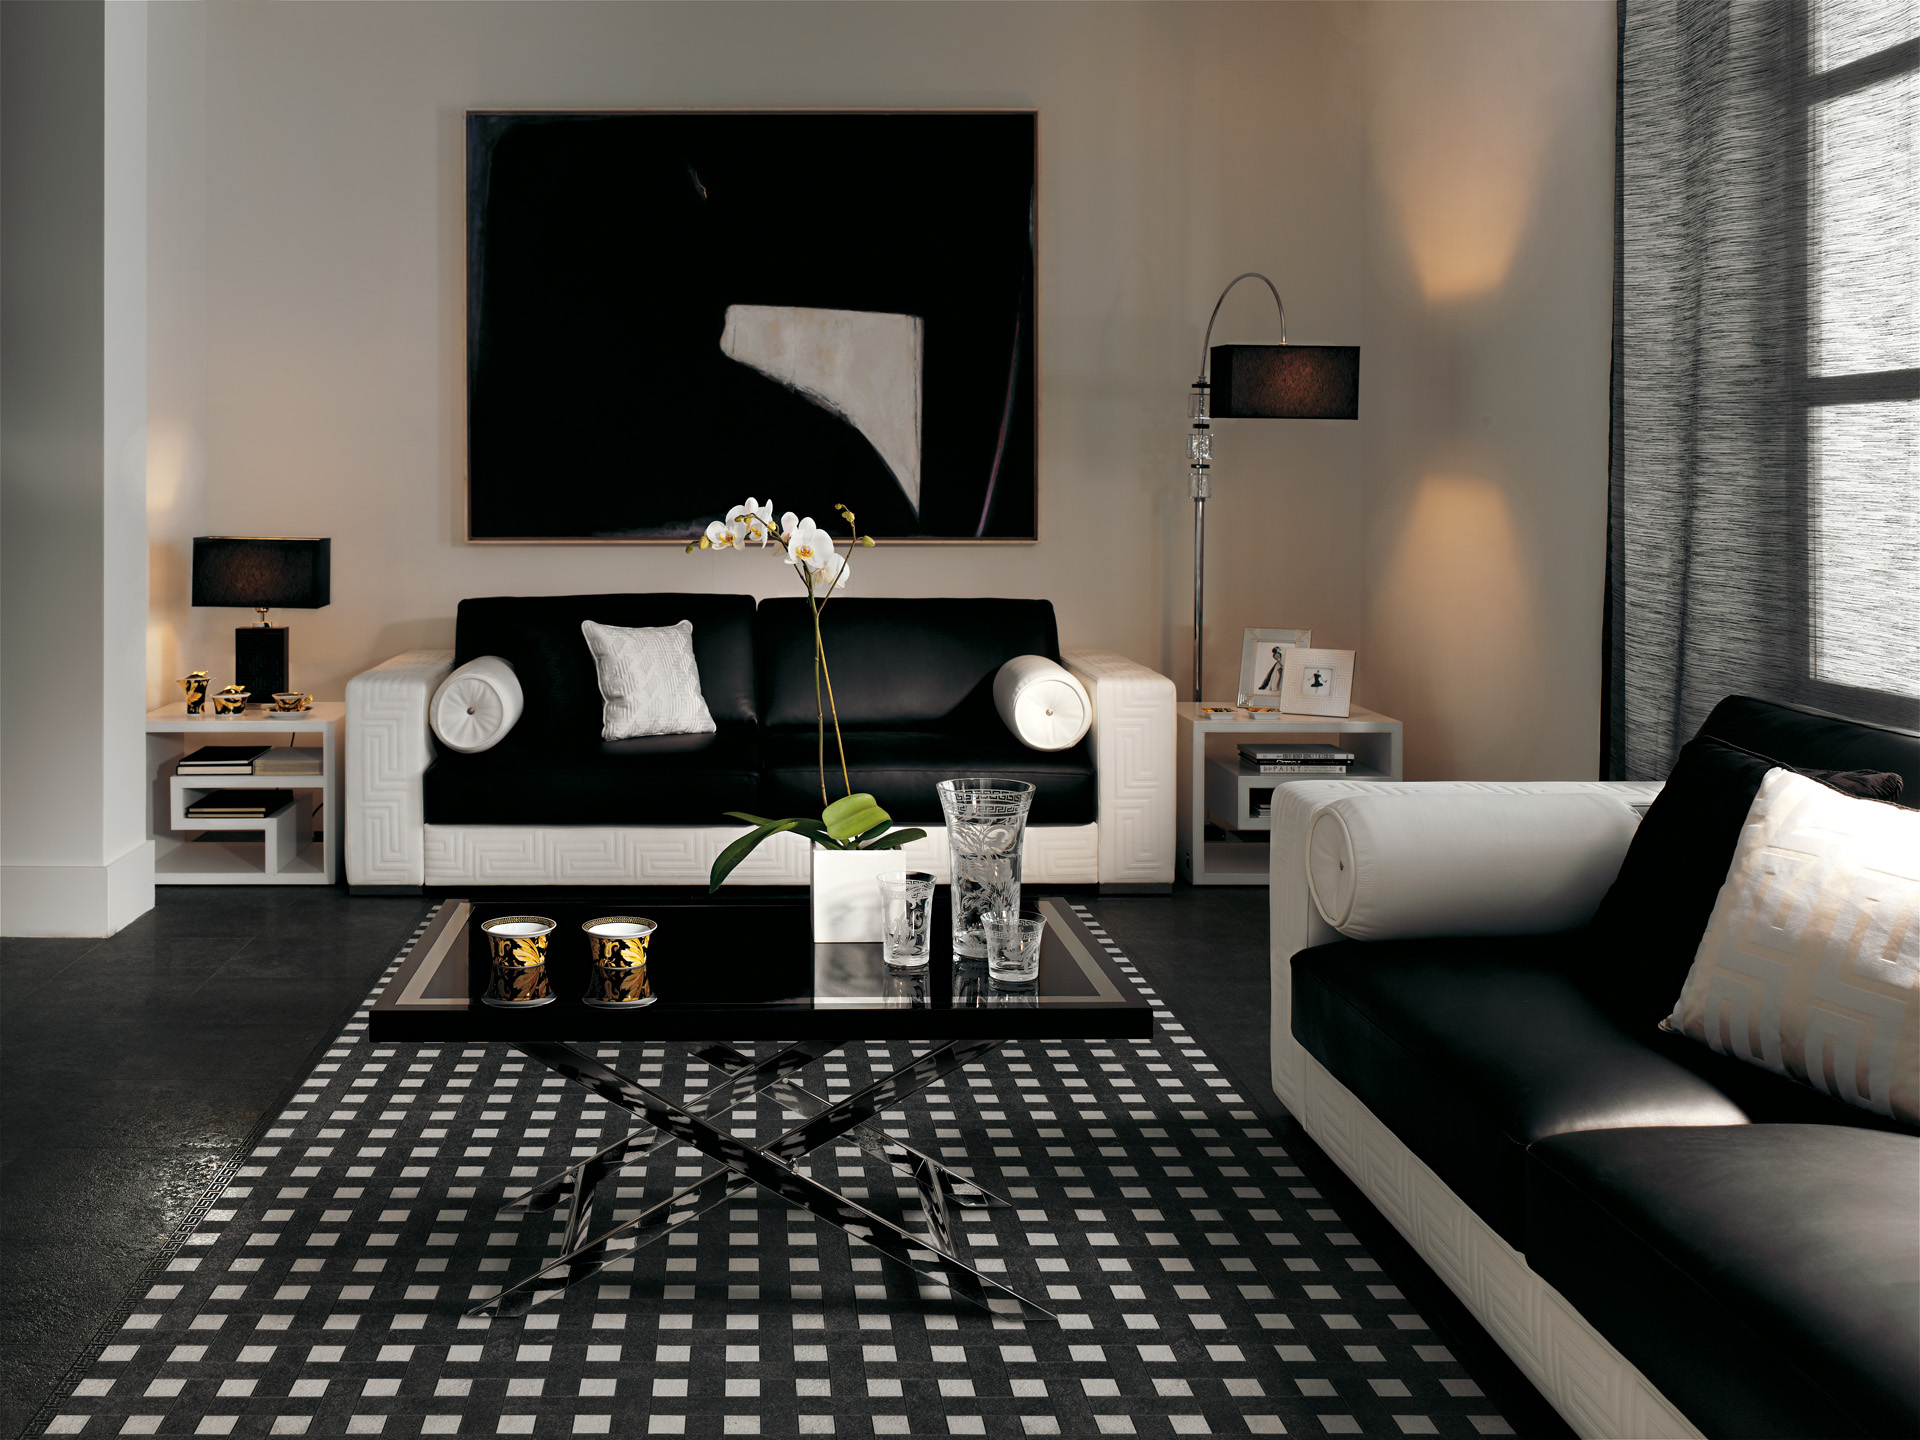 versace home tiles versace ceramic tiles versace ceramic. Black Bedroom Furniture Sets. Home Design Ideas